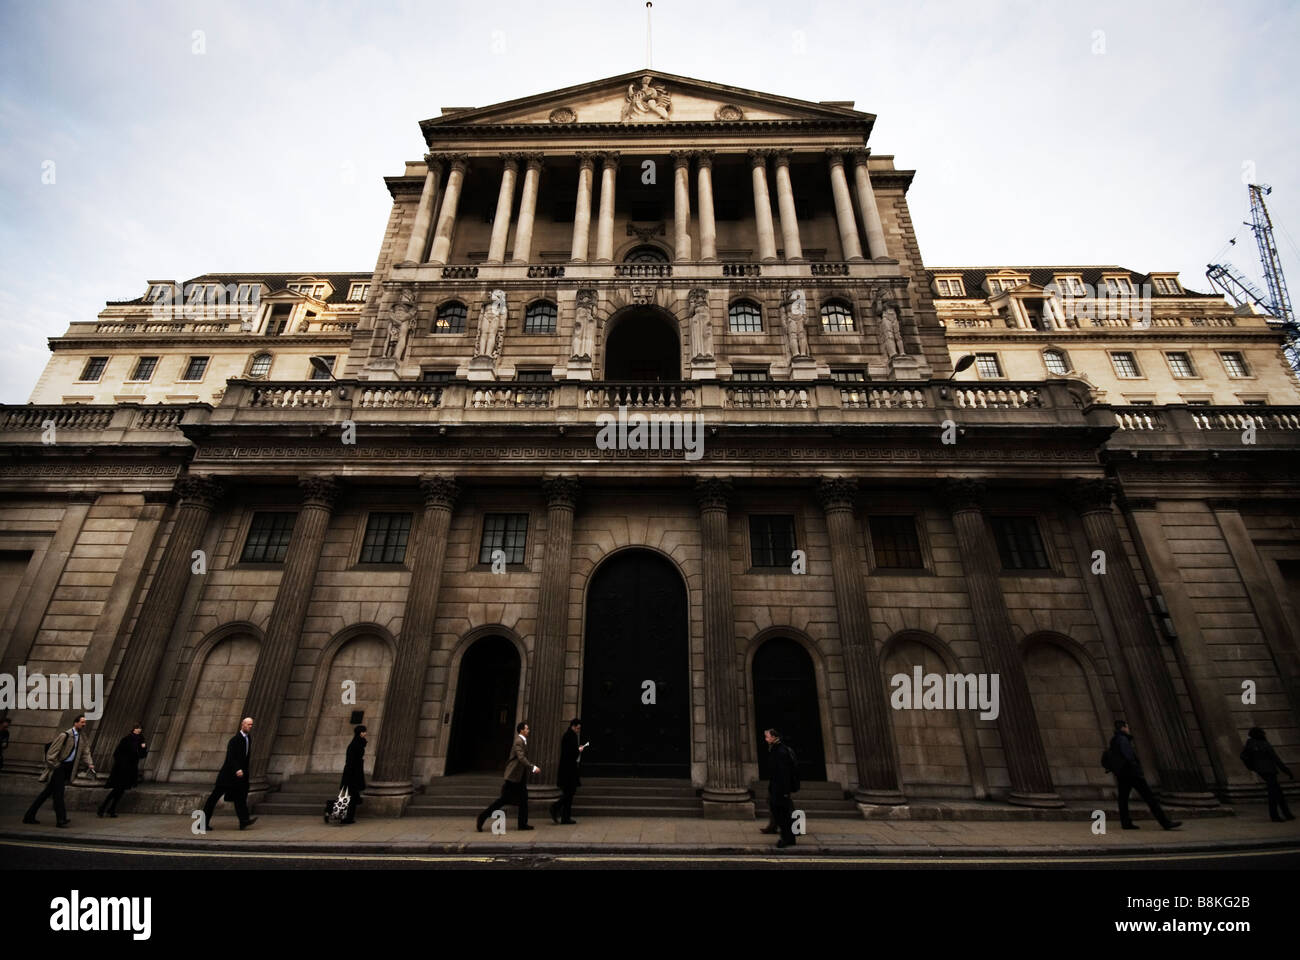 The Bank of England Building in Threadneedle Street London - Stock Image